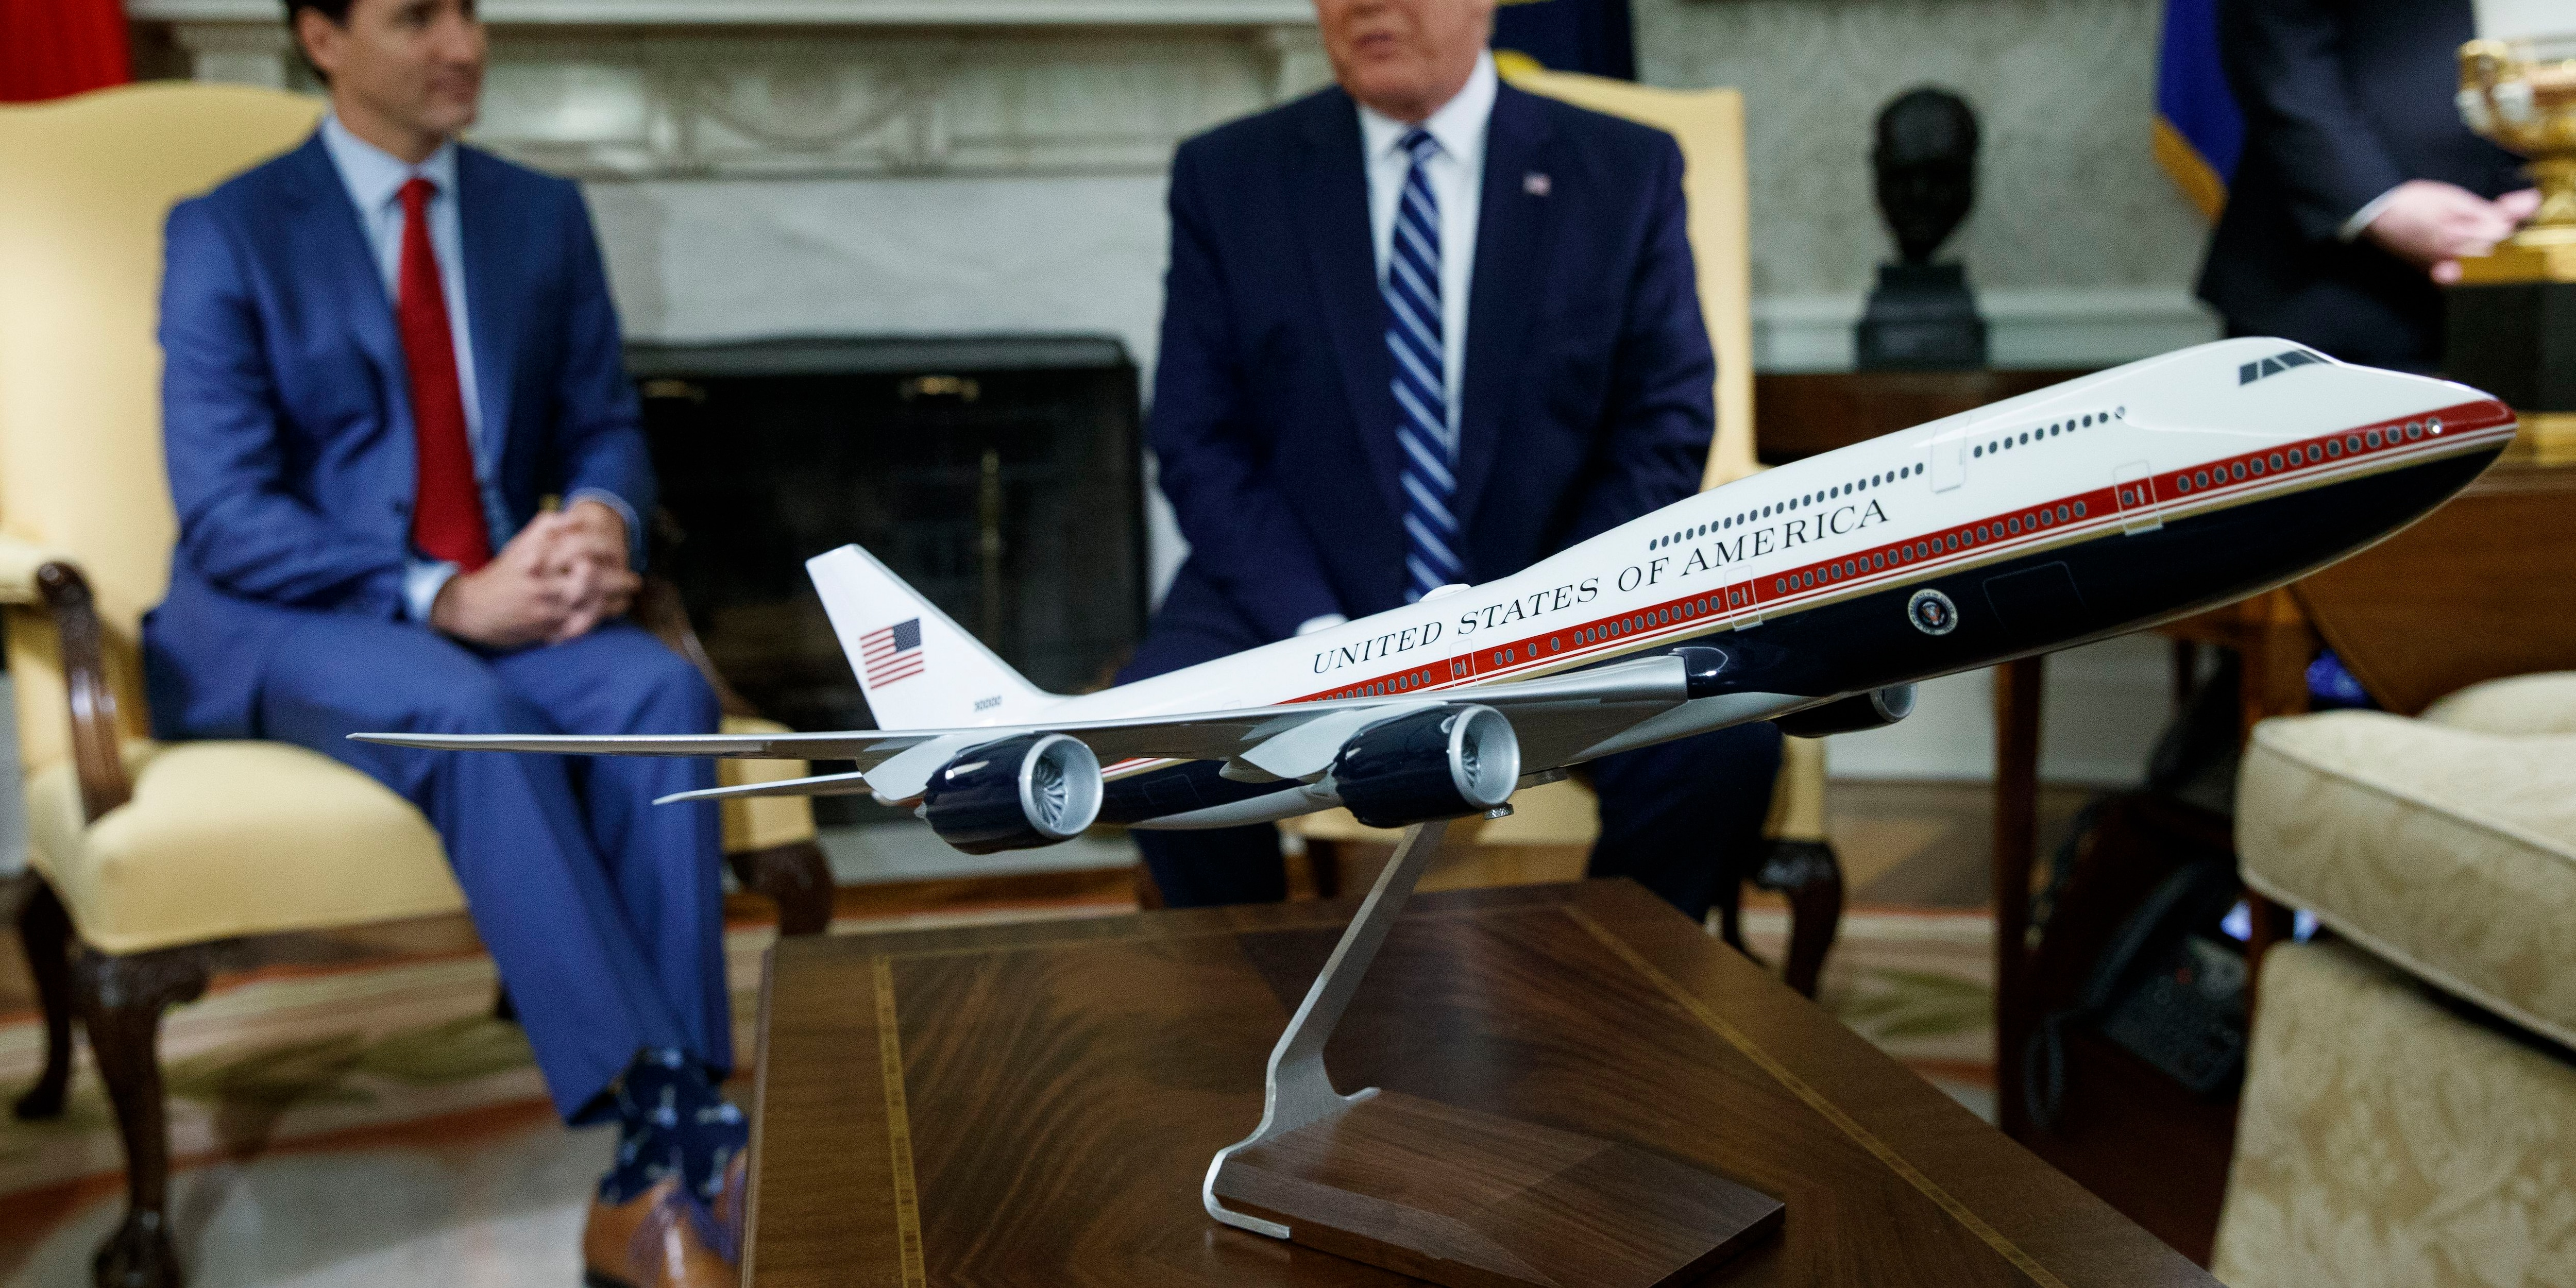 Trump shows off proposed red, white and blue Air Force One paint job